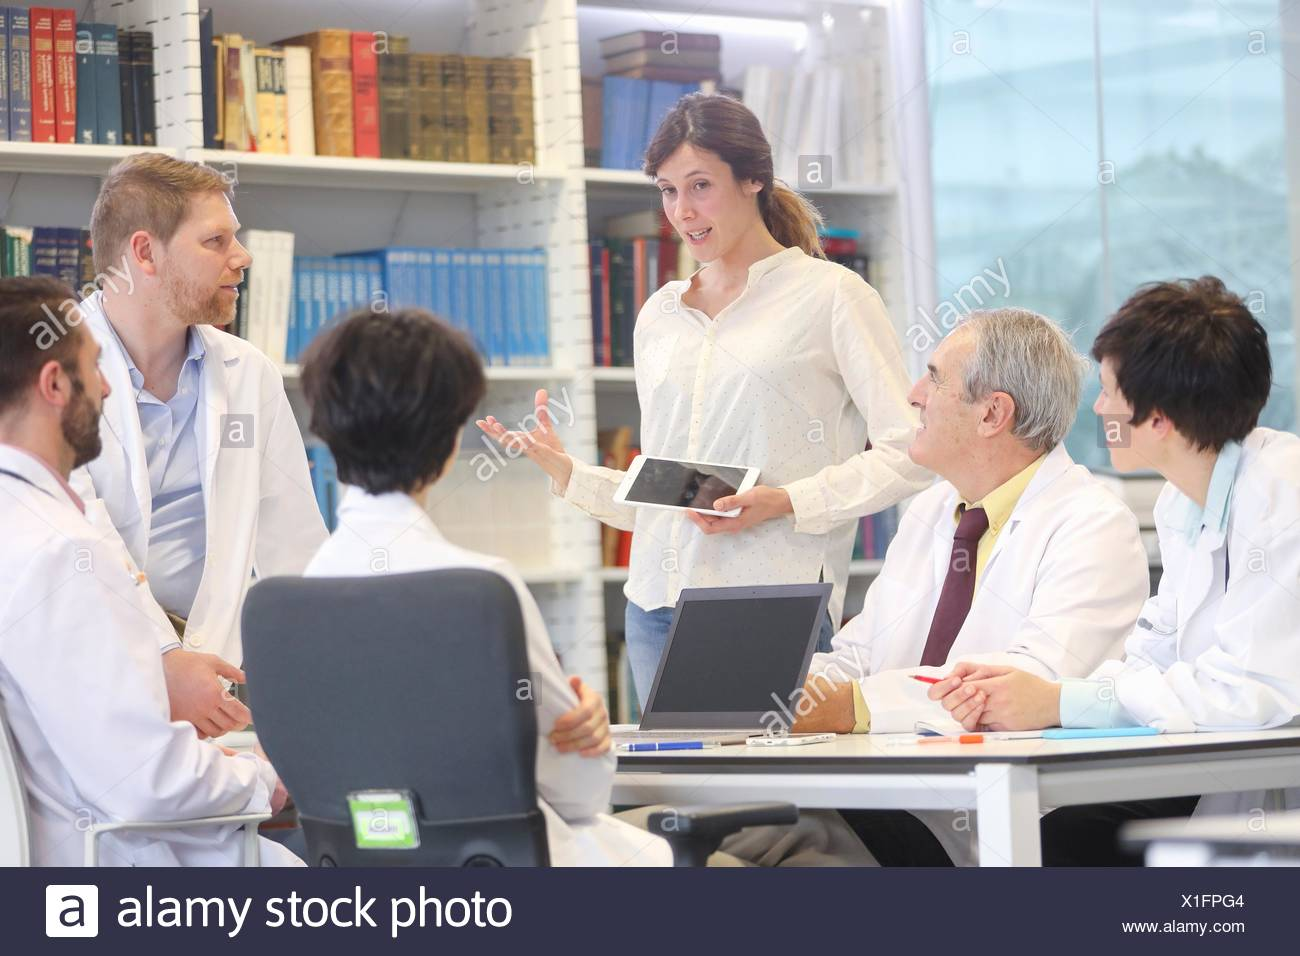 Saleswoman at doctors´ meeting, clinical session, Hospital, Donostia, San Sebastian, Gipuzkoa, Basque Country, Spain - Stock Image